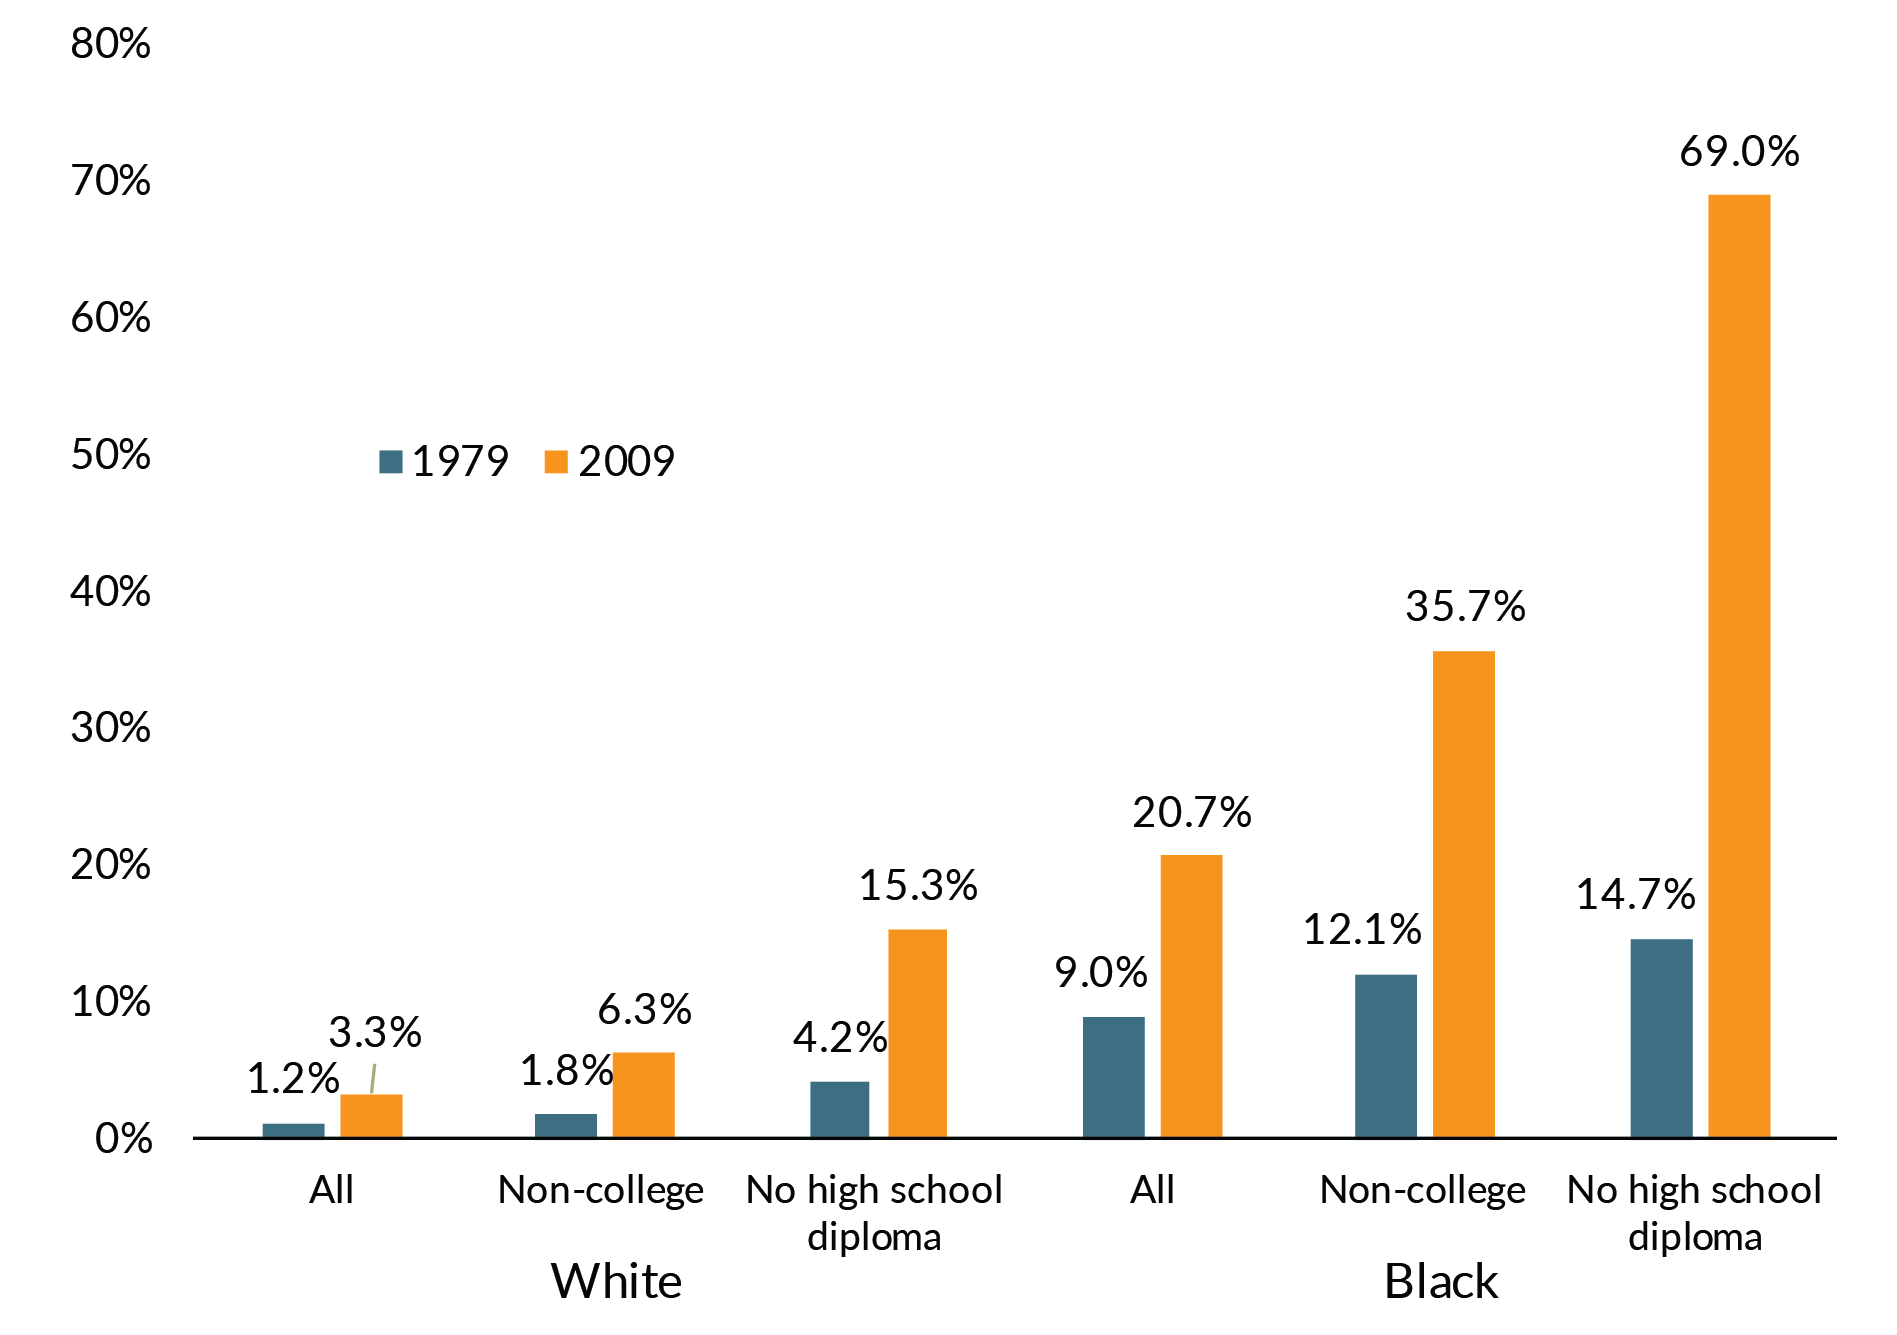 Black men with low education levels are at high risk for incarceration, much higher than white men with similar education levels.